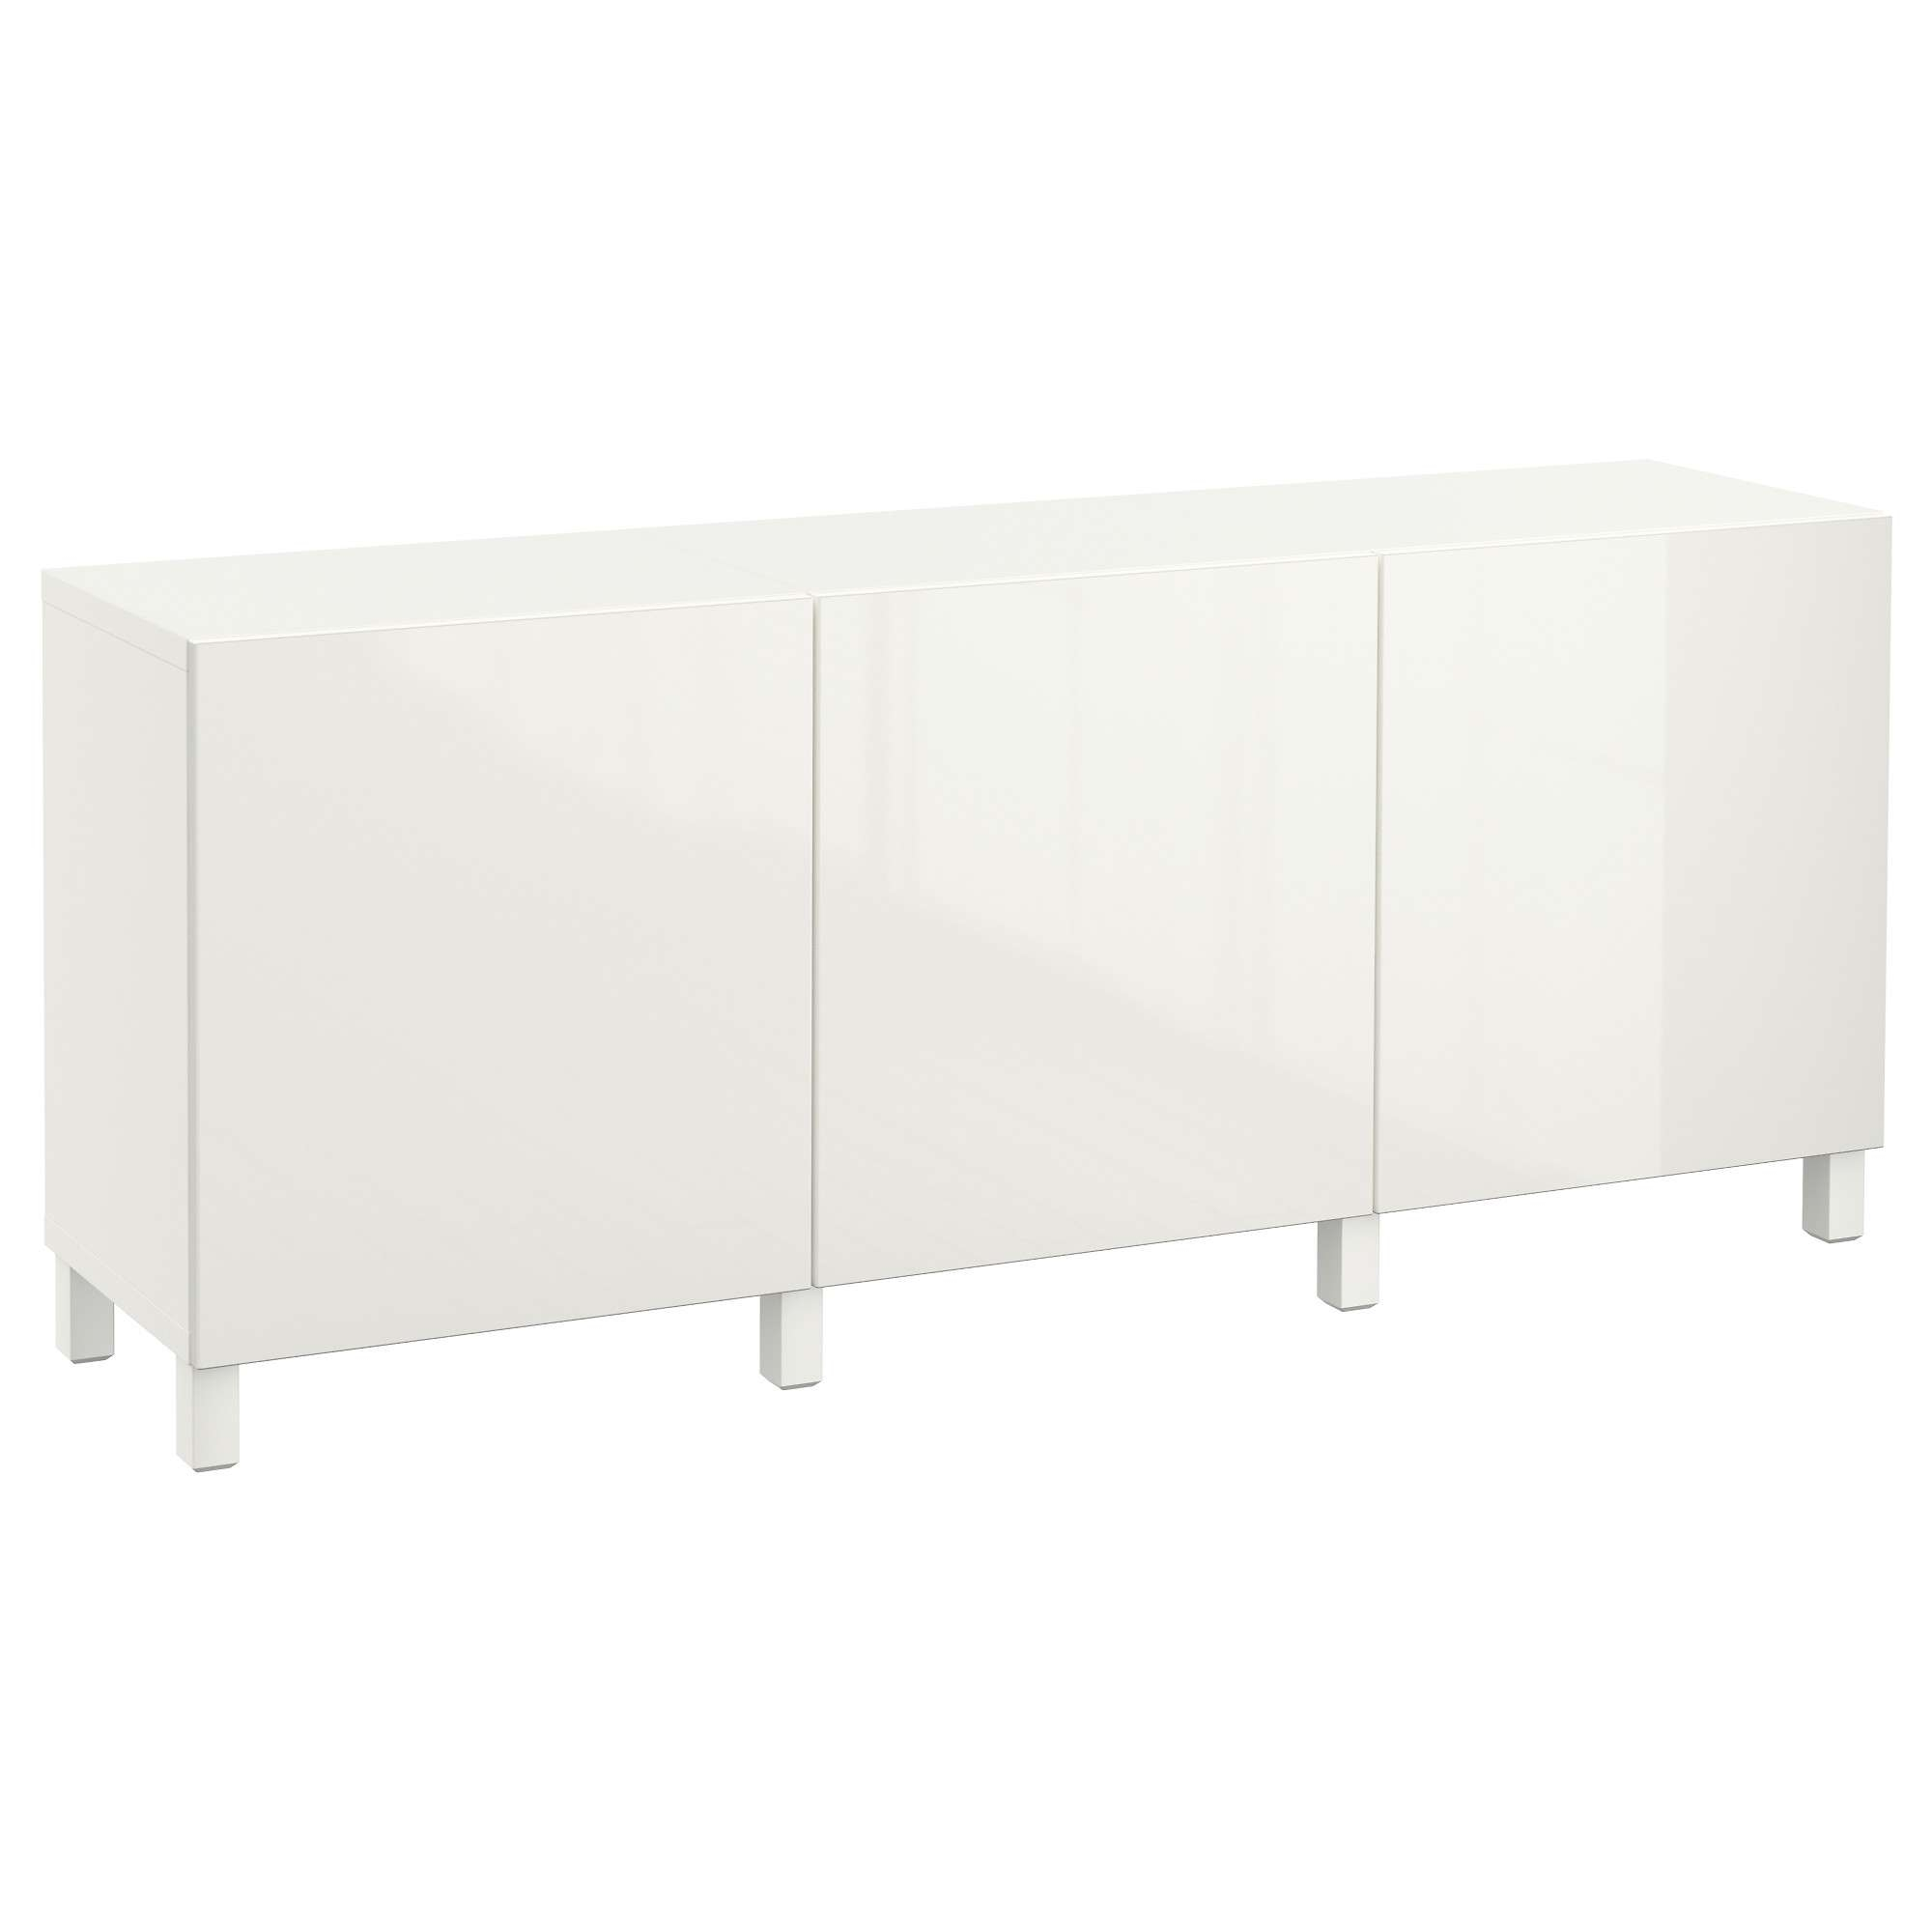 Bestå Storage Combination With Doors – White/selsviken High Gloss Pertaining To White Modern Sideboards (View 2 of 20)